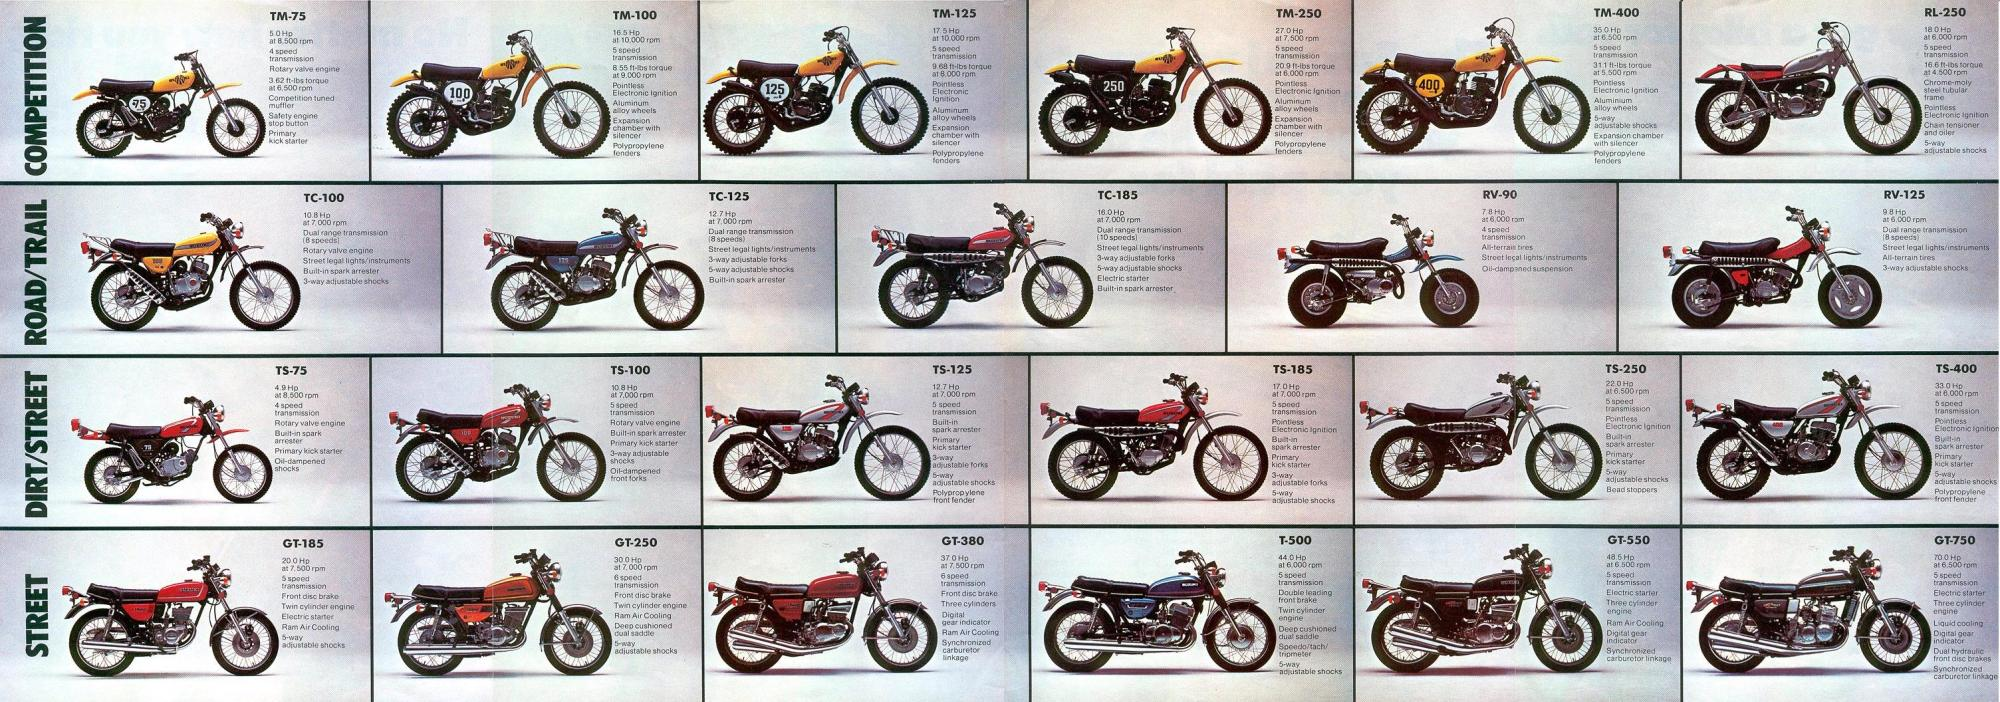 hight resolution of 1976 suzuki ts 125 wiring diagram wiring diagram expert suzuki tc 90 wiring diagram